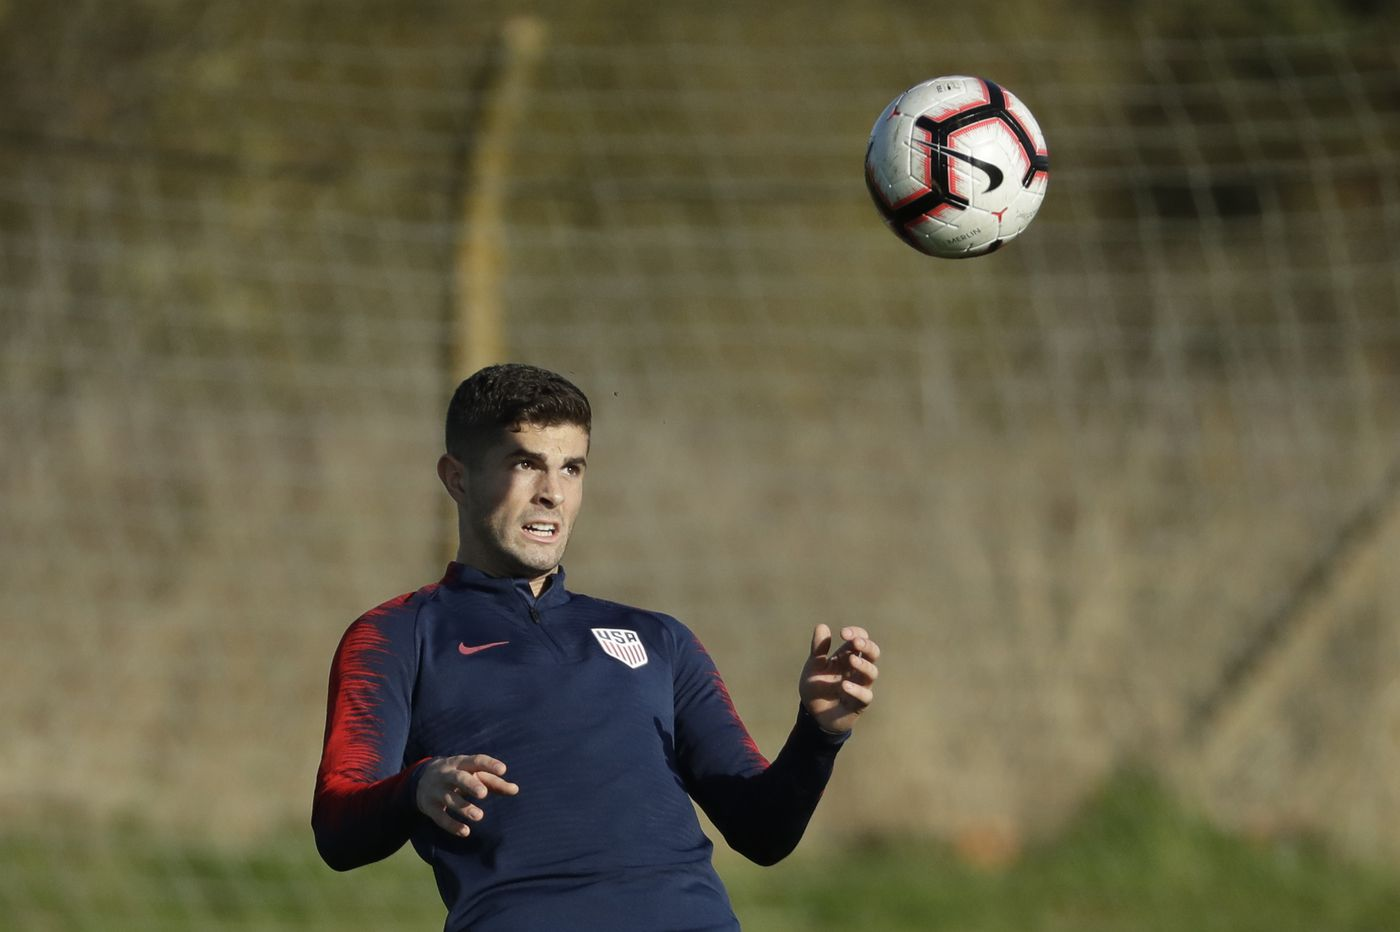 Hershey's Pulisic assumes leadership role on return to U.S. men's soccer team